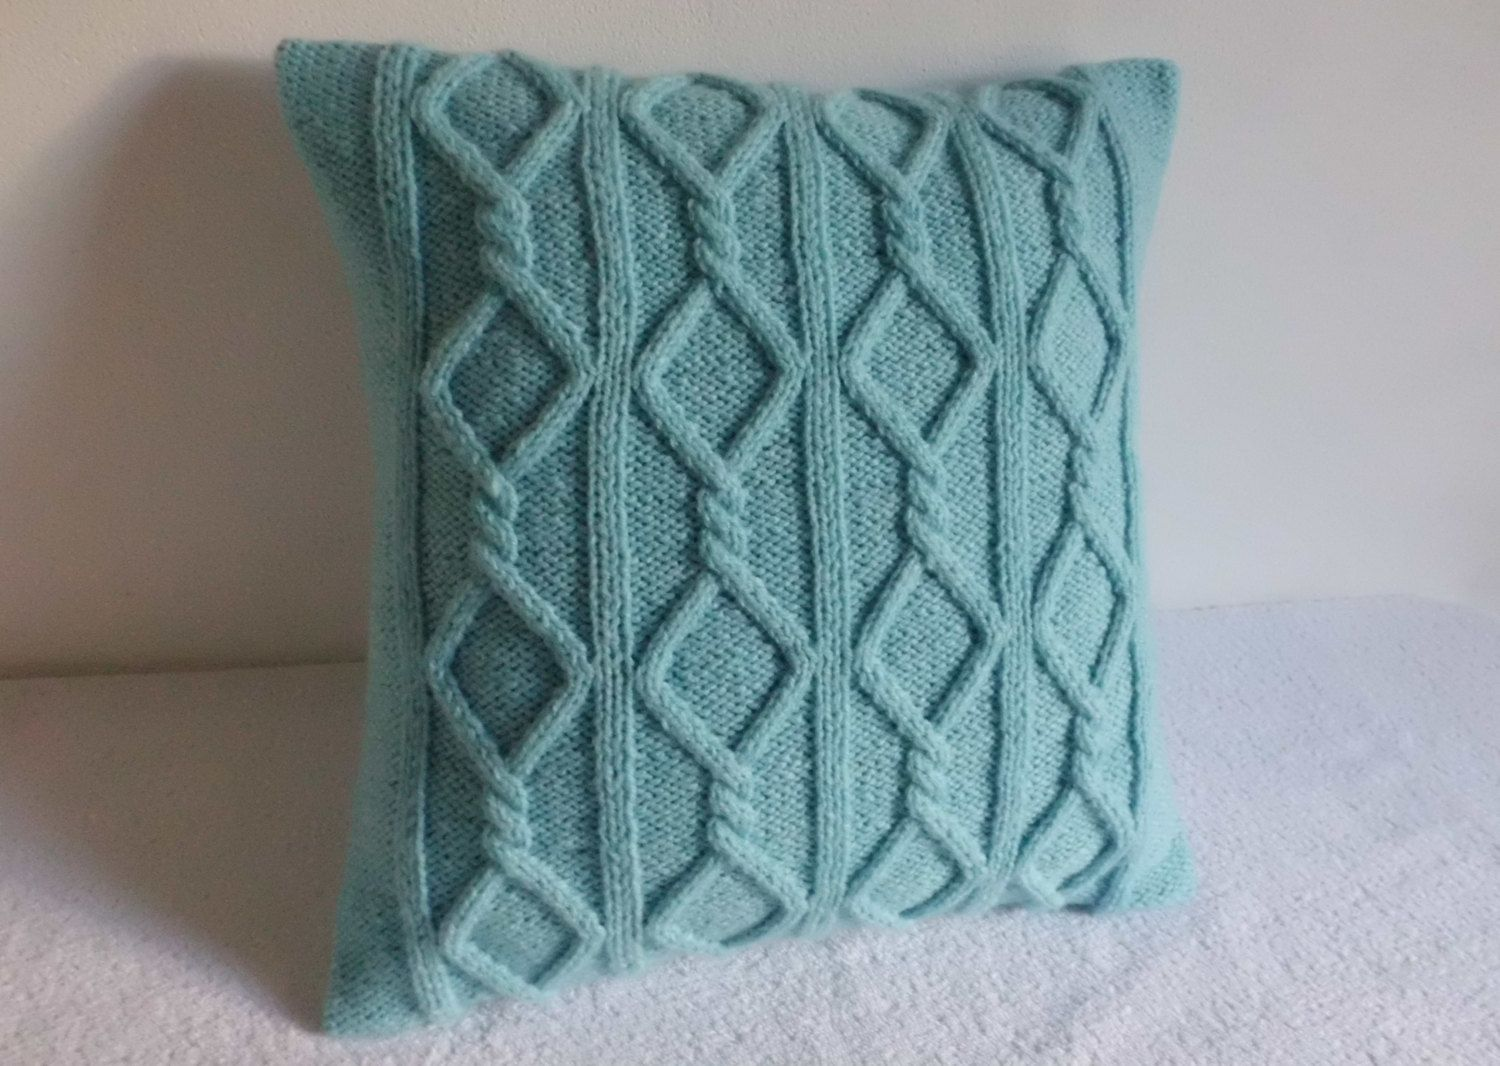 Knit Throw Pillow Cover Pattern : Cable Knit Pillow Cover Aqua, Turquoise Knit Throw Pillow, Decorative Pillow, Hand Knit Pillow ...